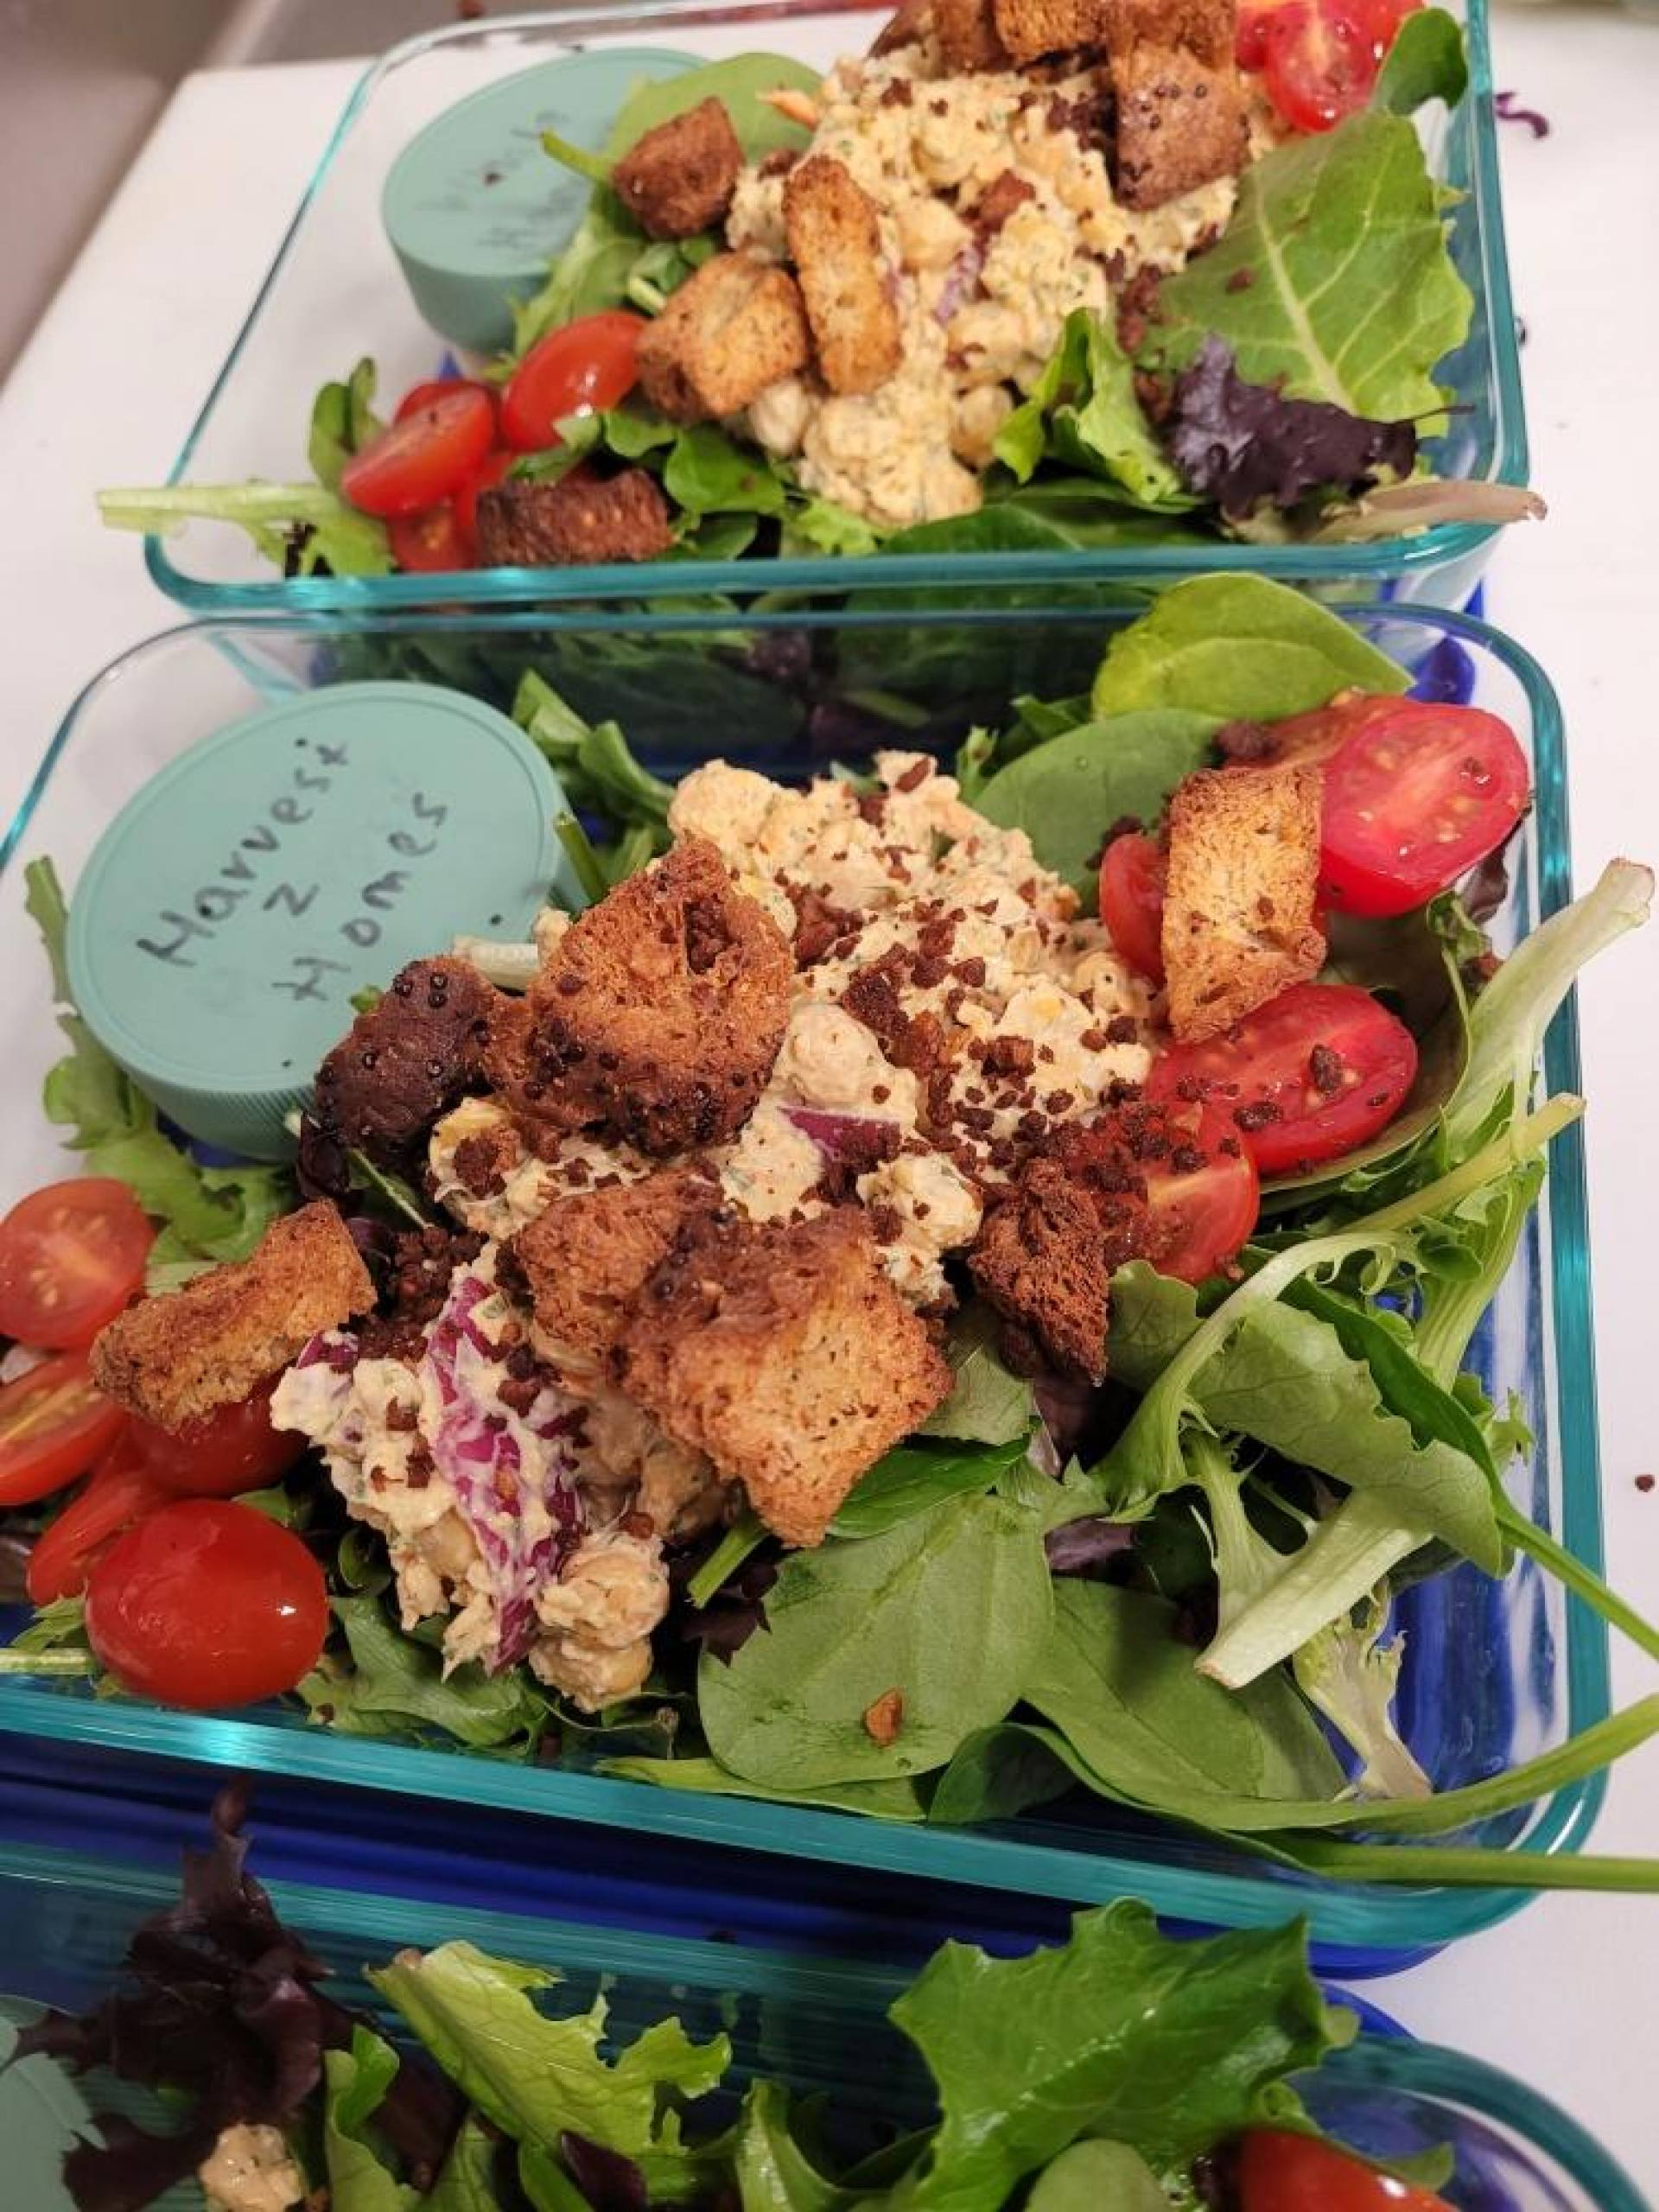 Mix green salad with chickpea salad